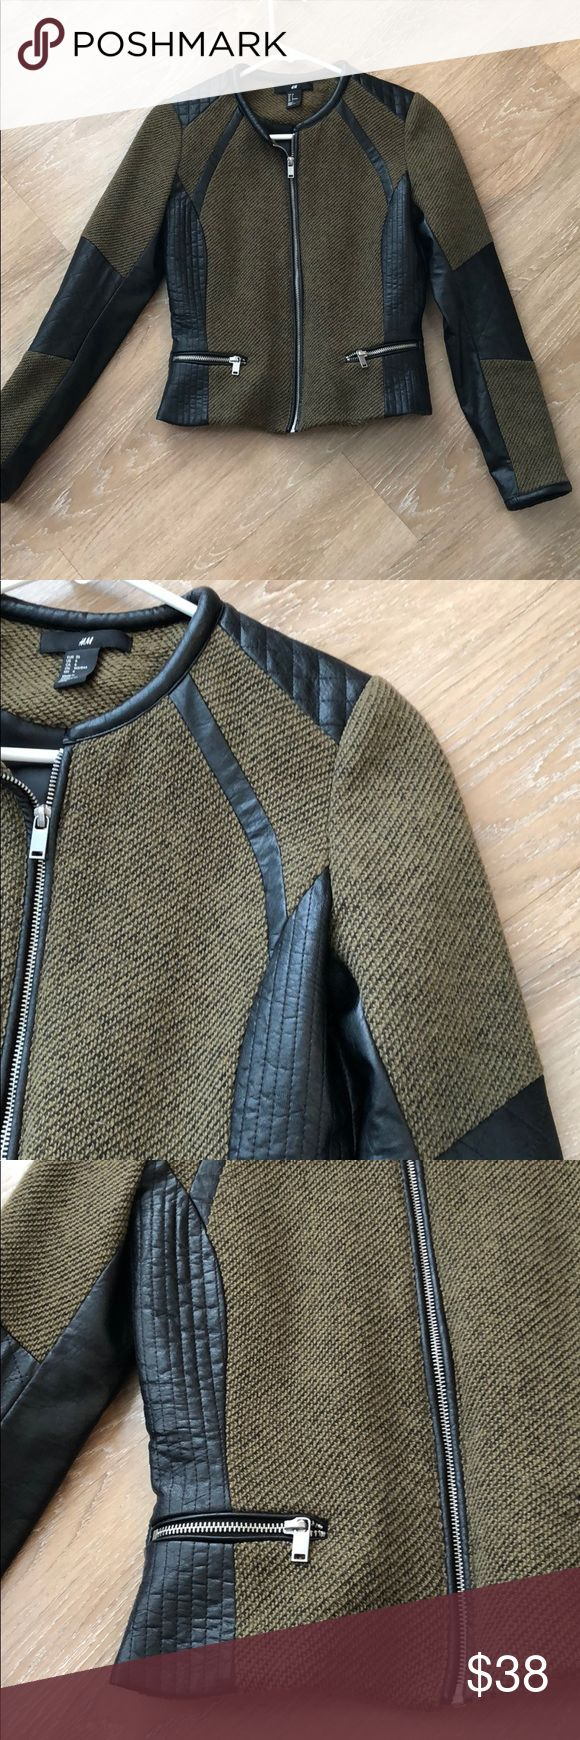 H&M Olive Green and Black Leather Biker Jacket Great